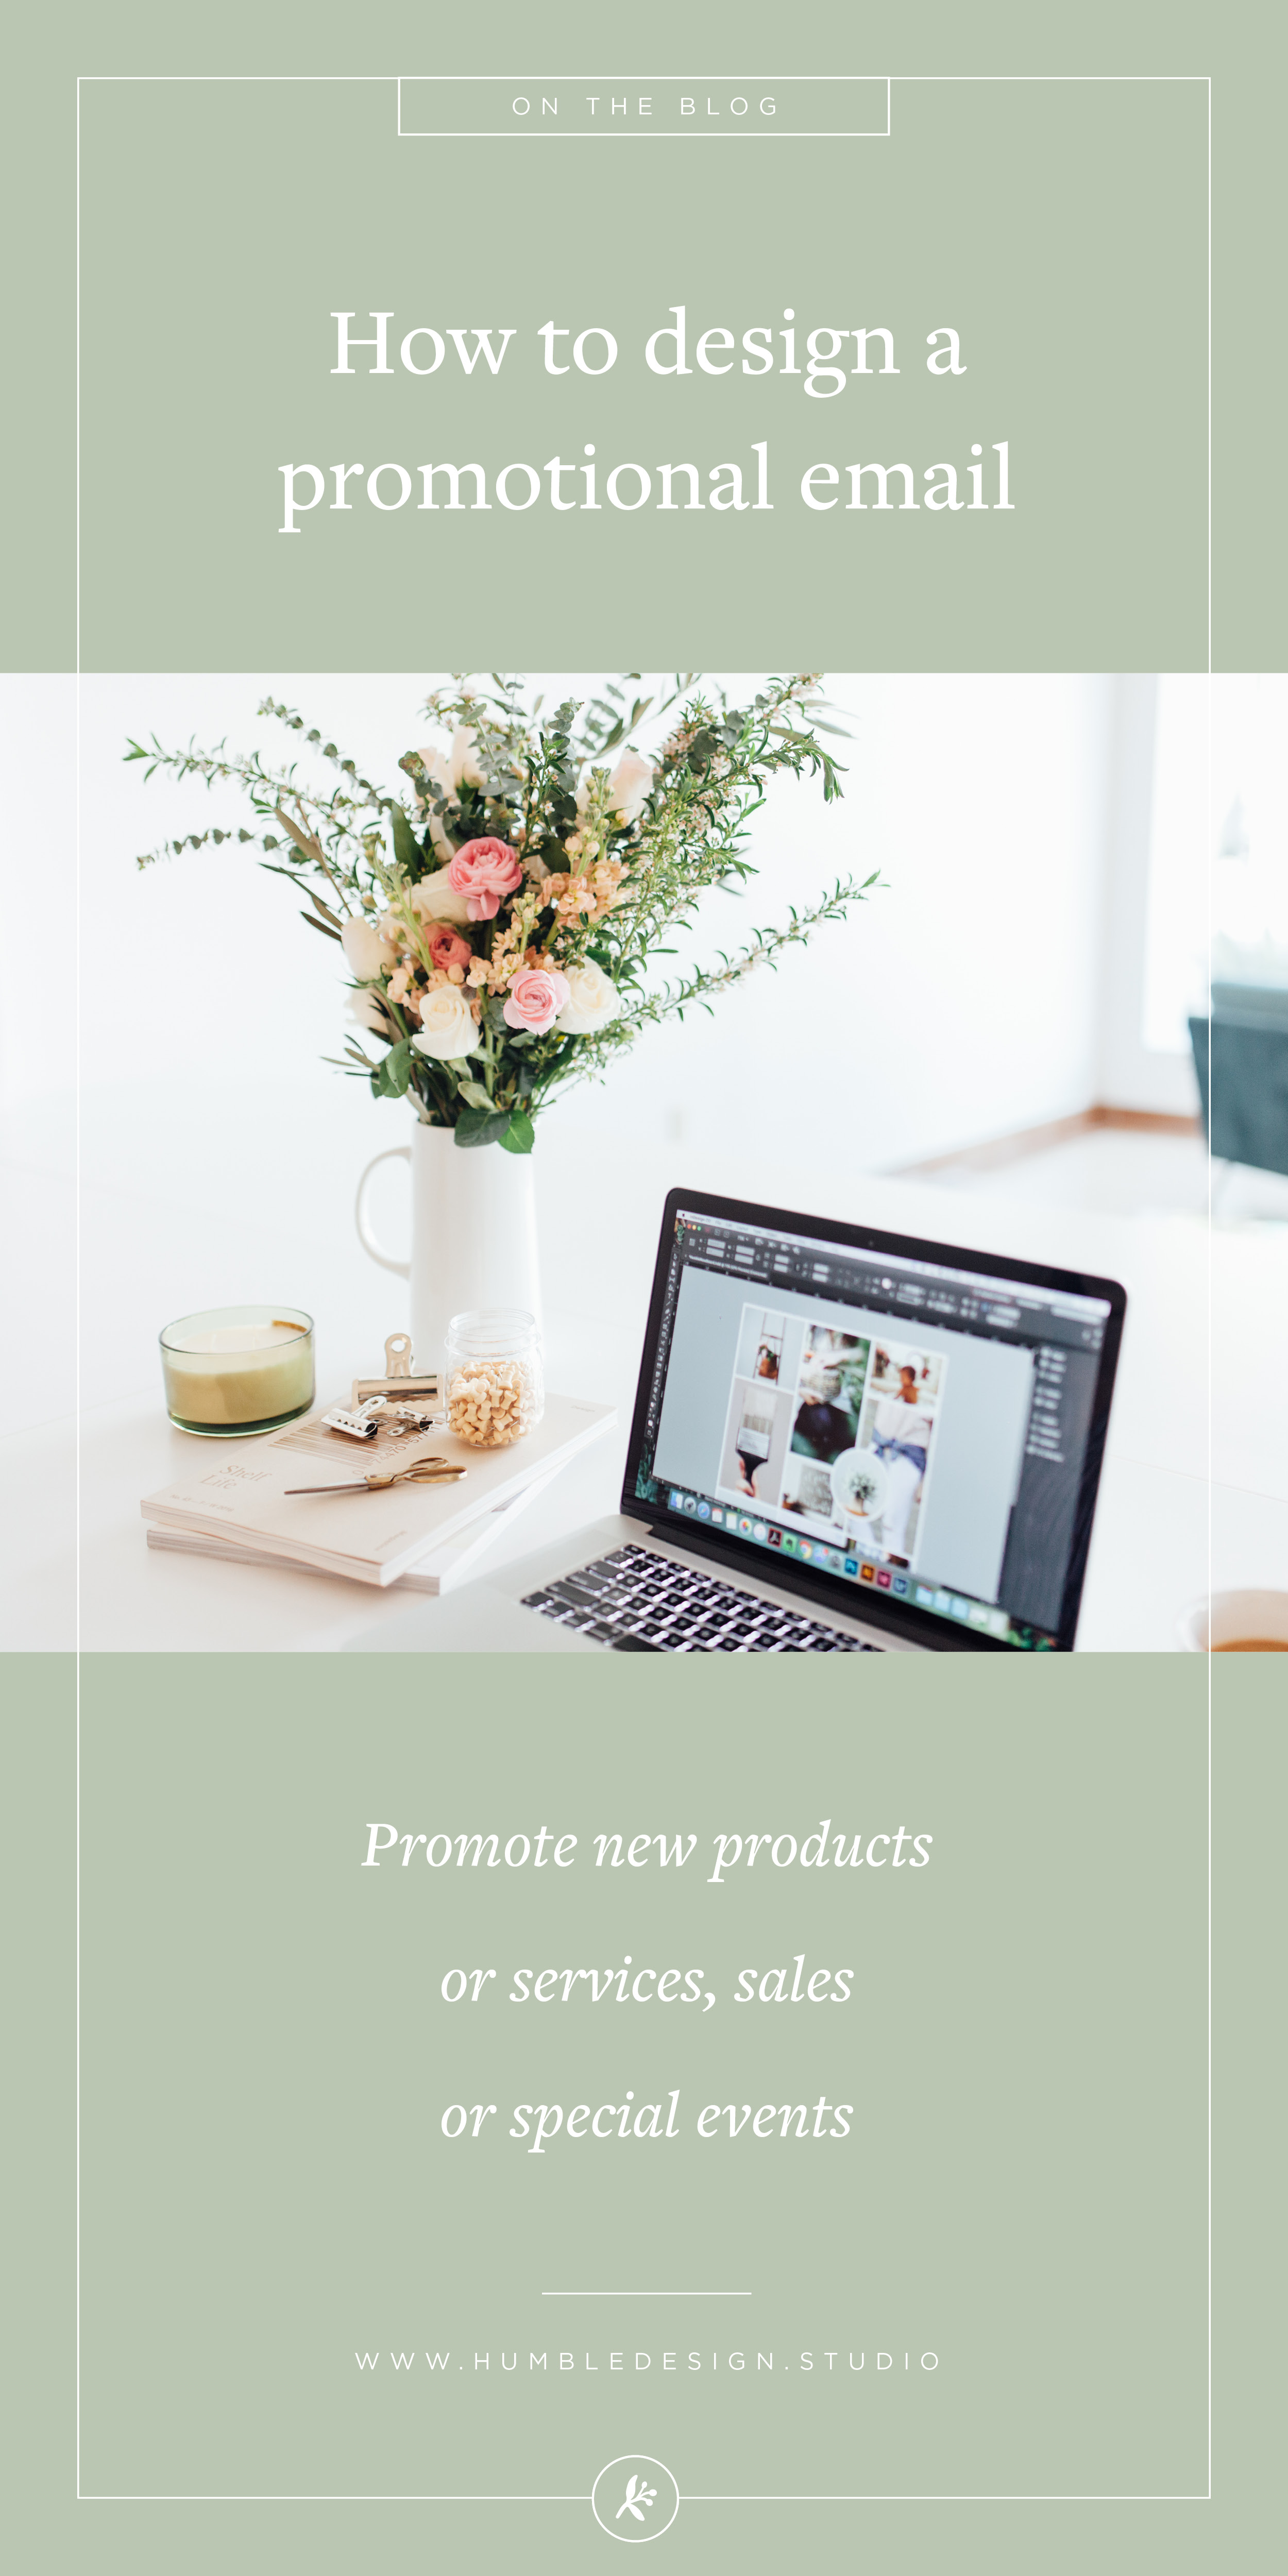 How to design a promotional email.jpg